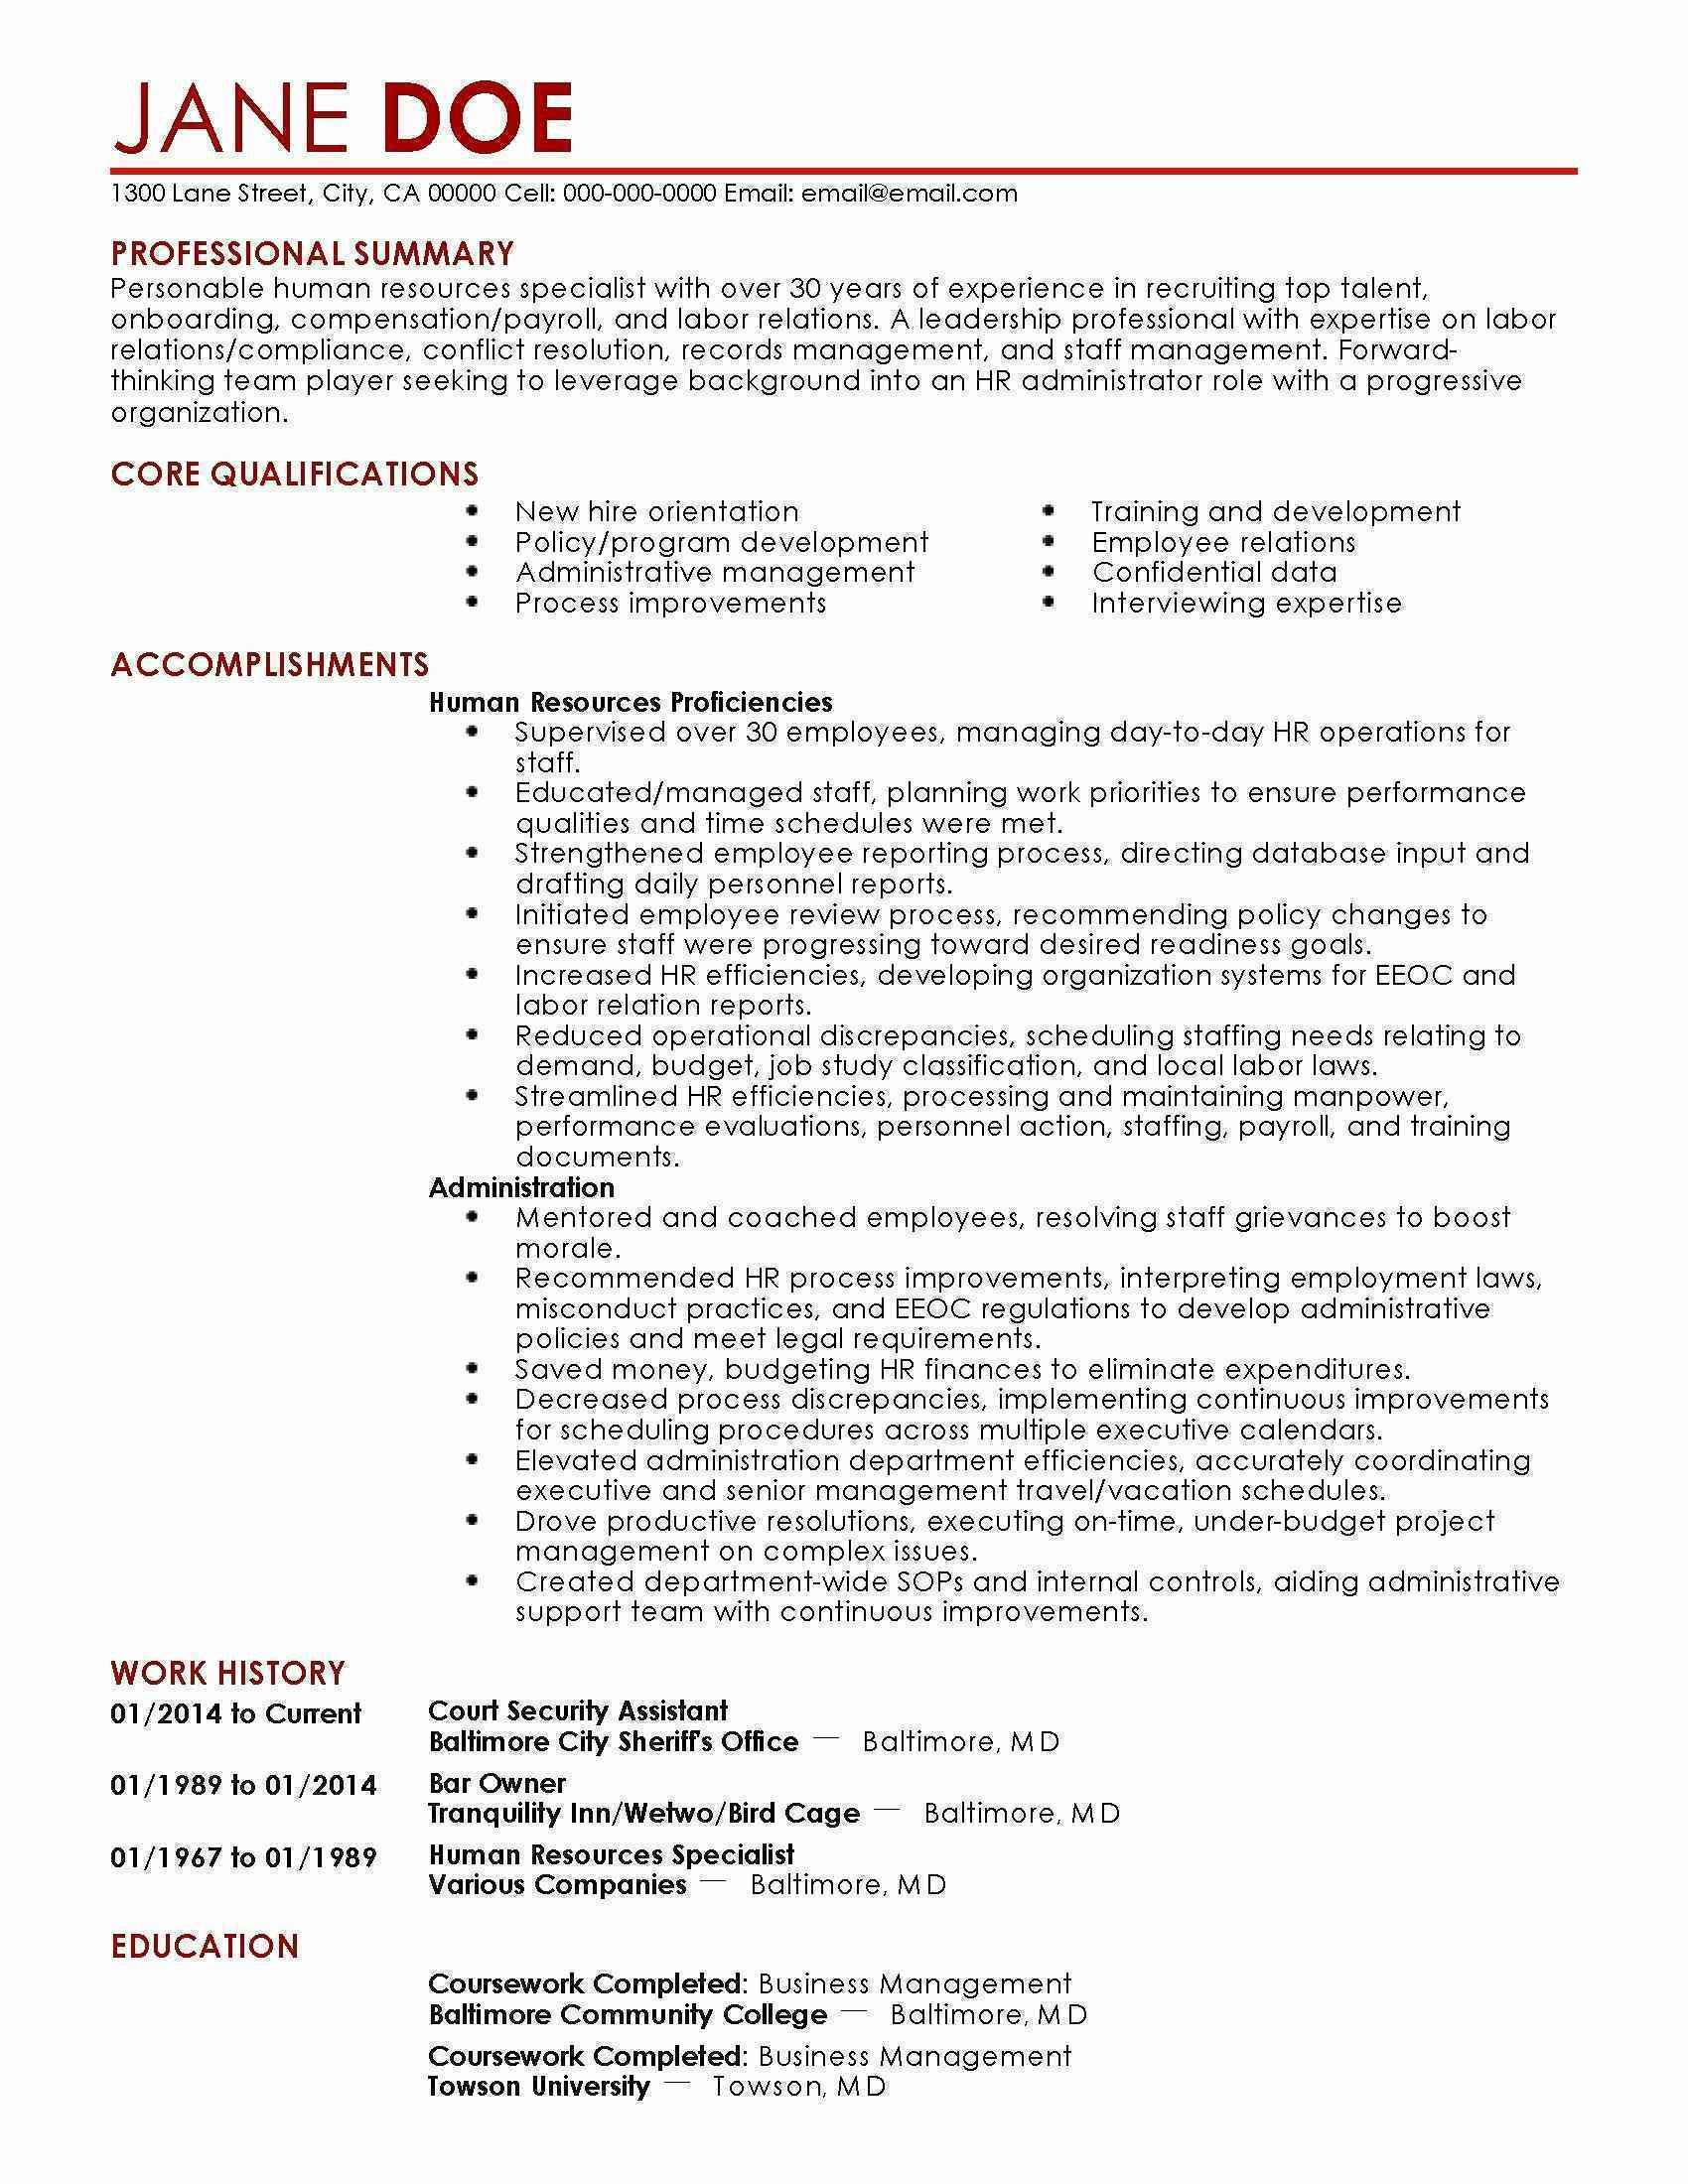 68 Elegant Photos Of Resume Samples In Business Administration Check More At Https Www Ourpetscrawley Com 68 Elegant Photos Of Resume Samples In Business Admi